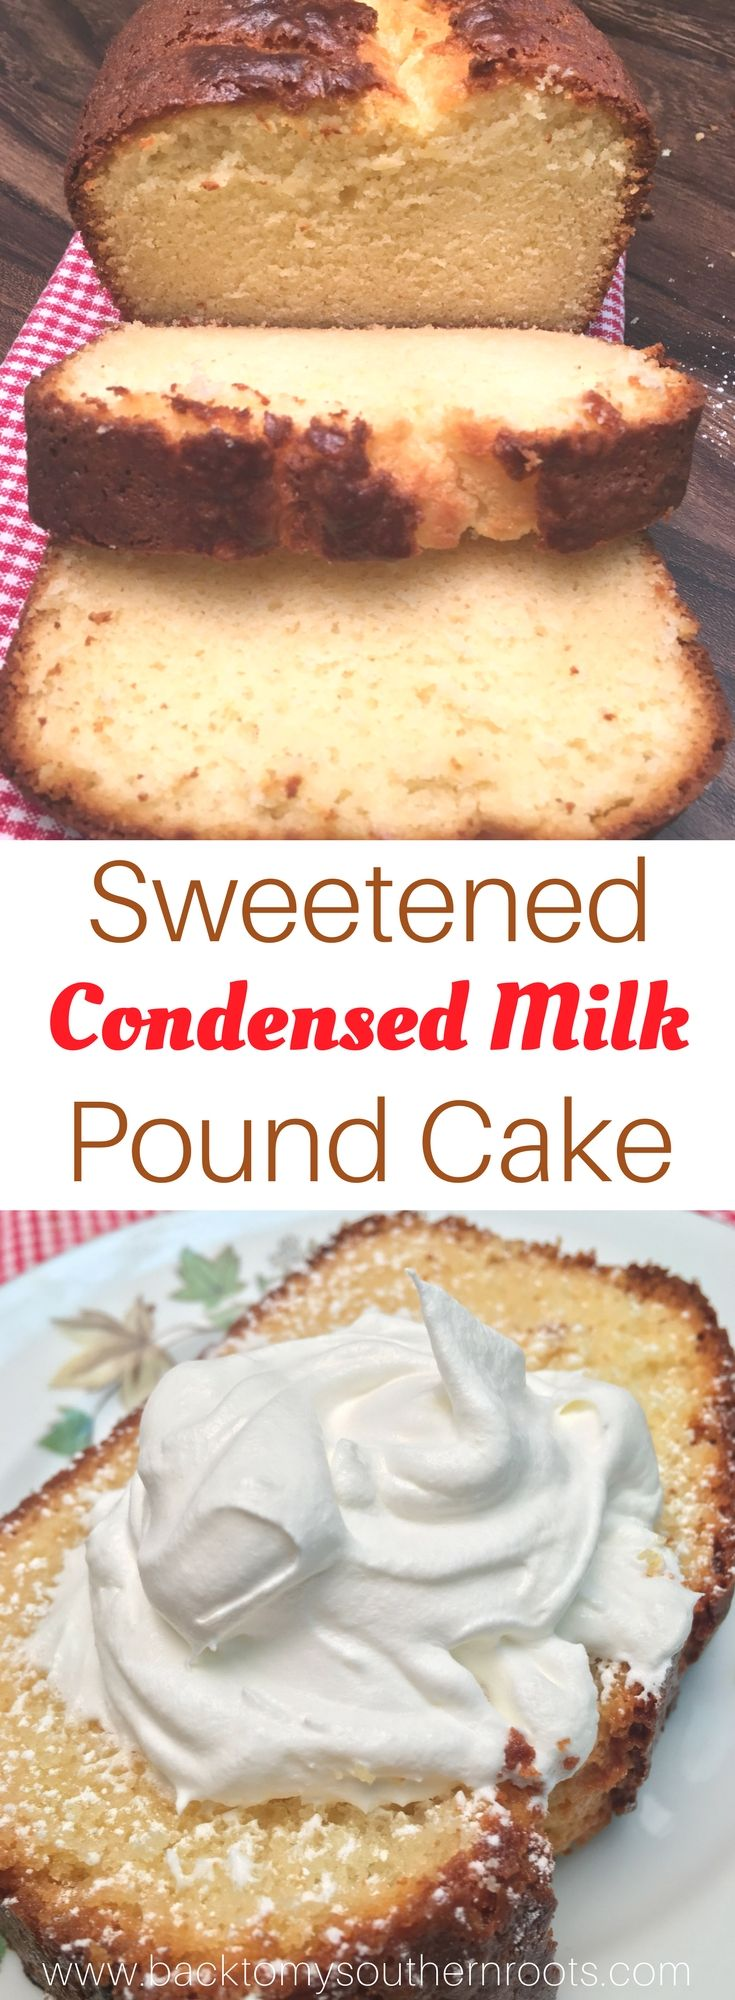 Pound Cake With Sweetened Condensed Milk Back To My Southern Roots Recipe Cake Recipes Savoury Cake Condensed Milk Recipes